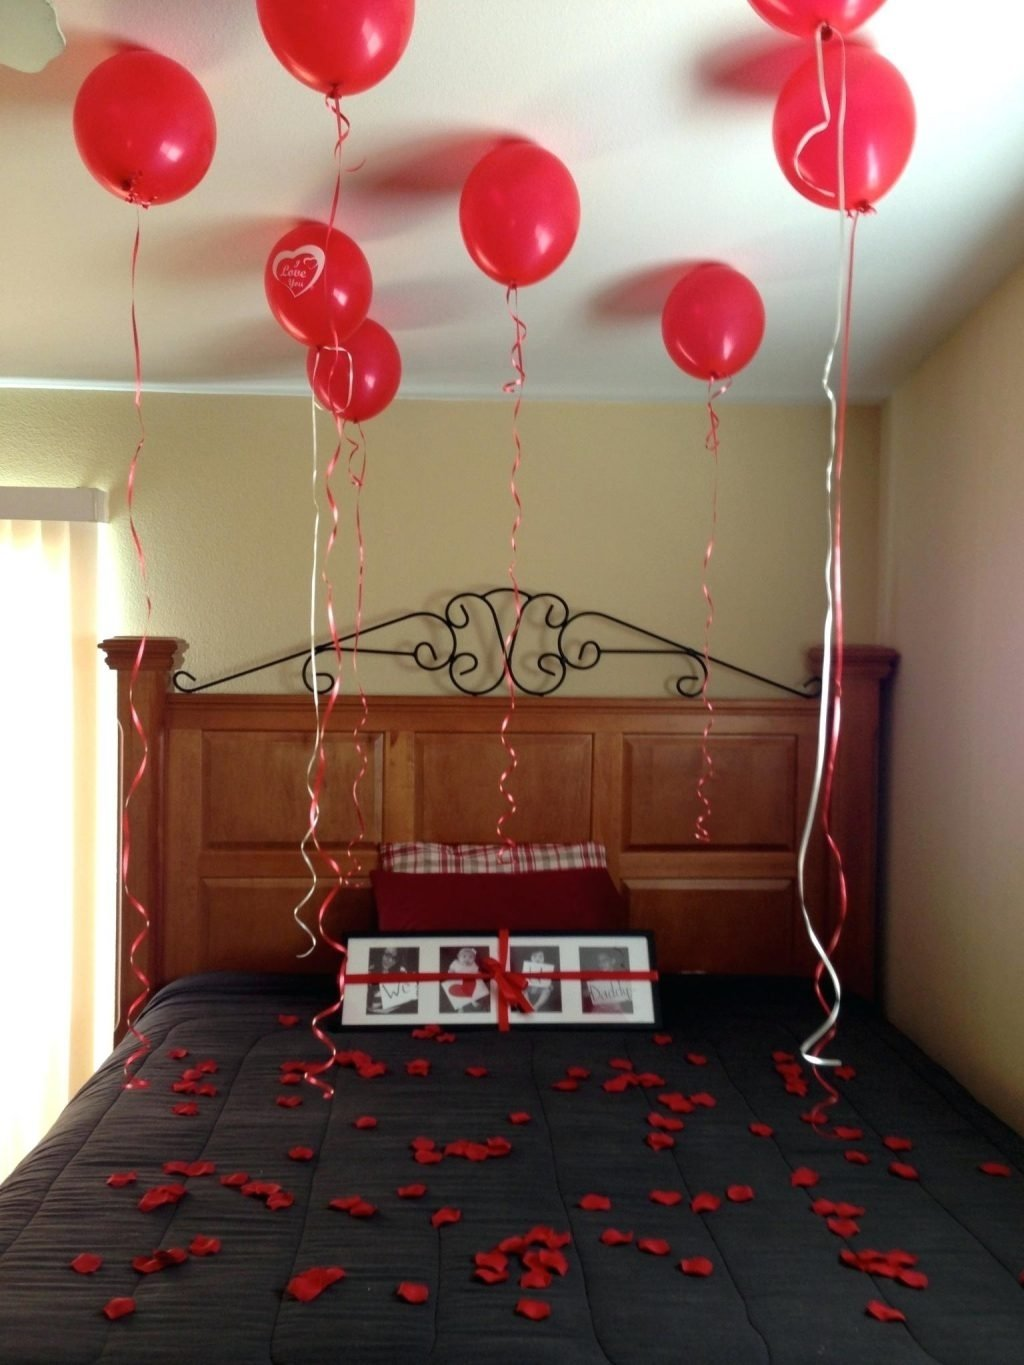 10 Great Romantic Valentines Day Ideas For Her valentines day romantic ideas bed decorating for on romantic 1 2020